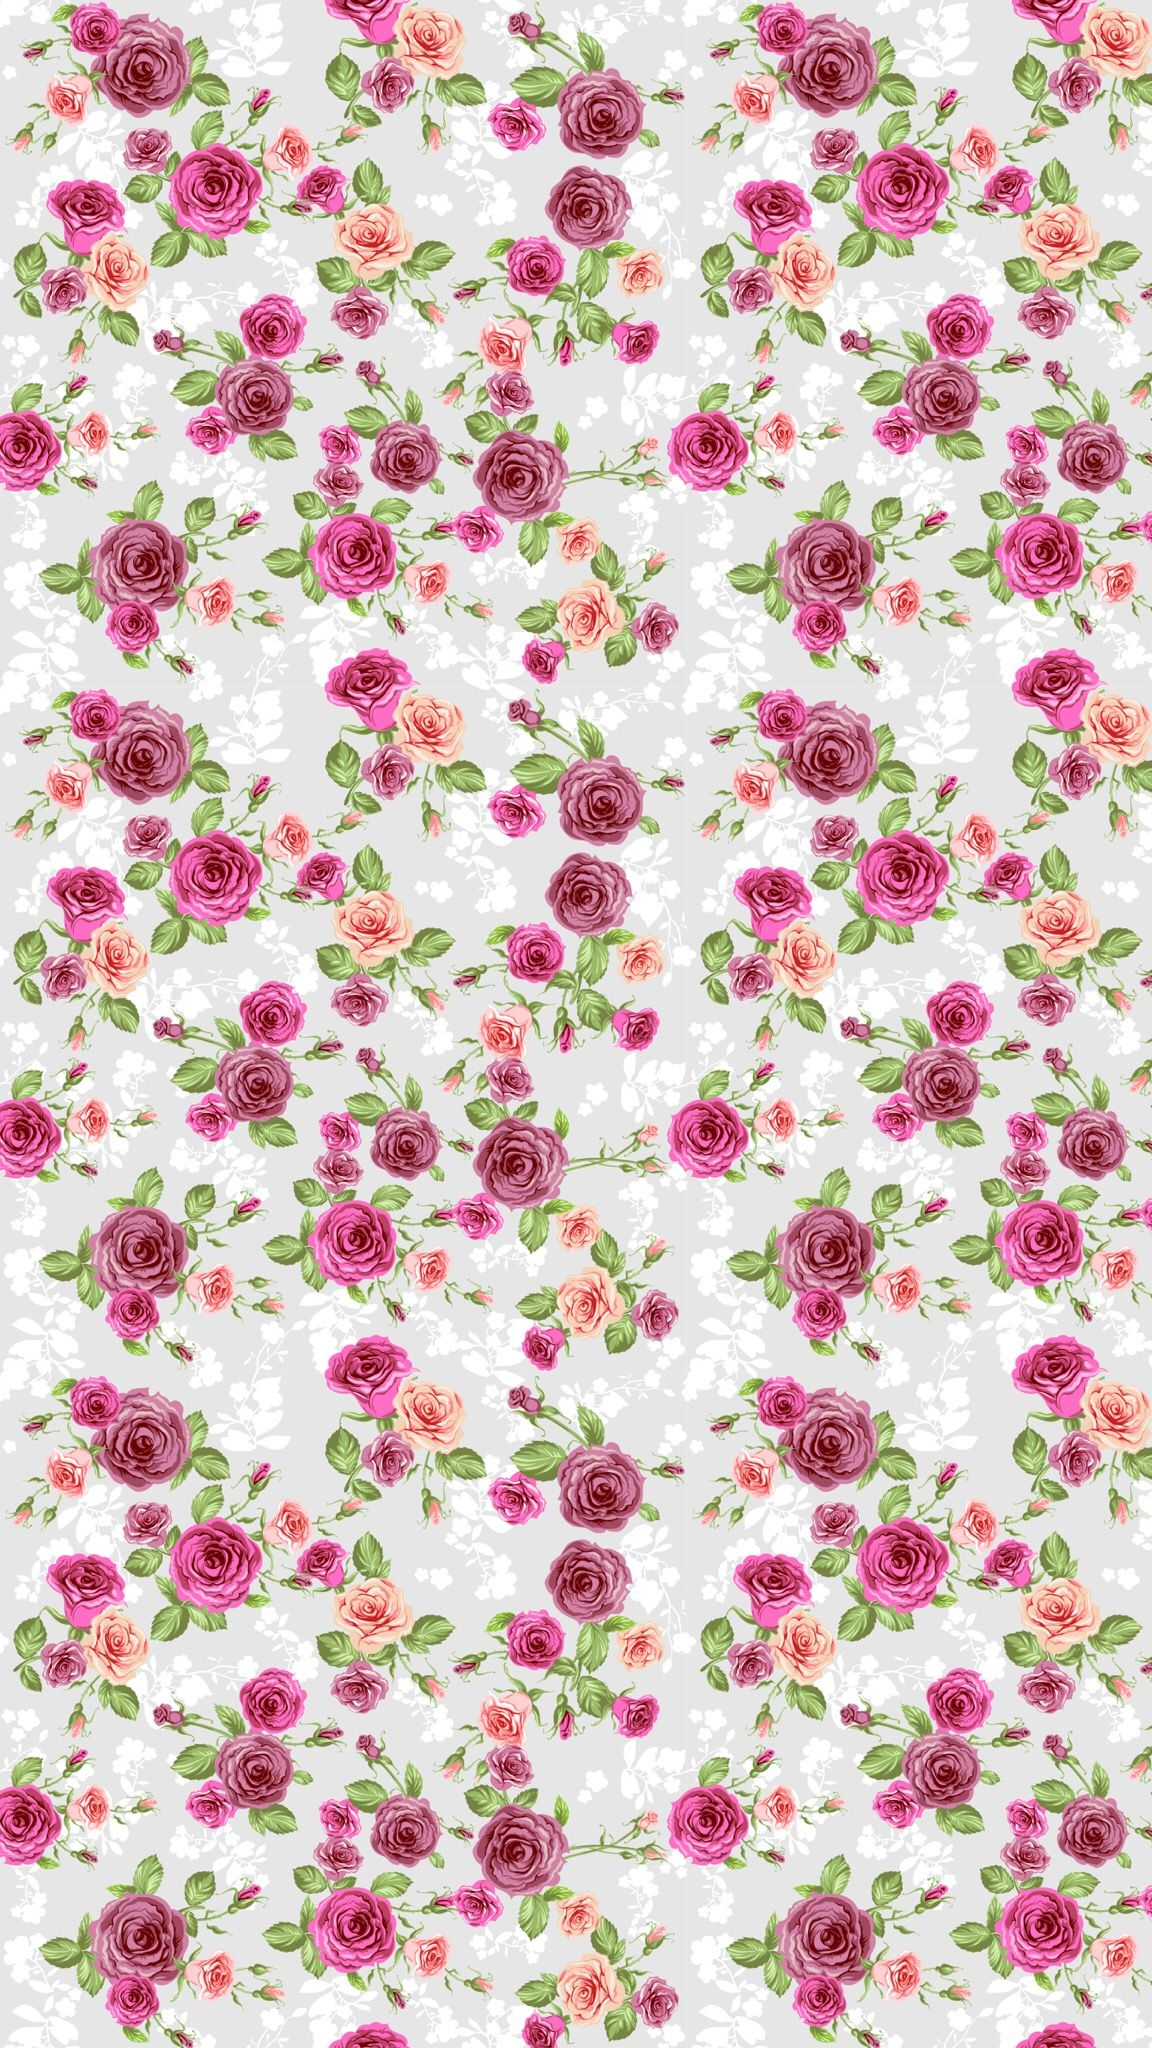 Flowers And Blur Polka Dots Vintage Flowers Wallpaper Flower Wallpaper Floral Wallpaper